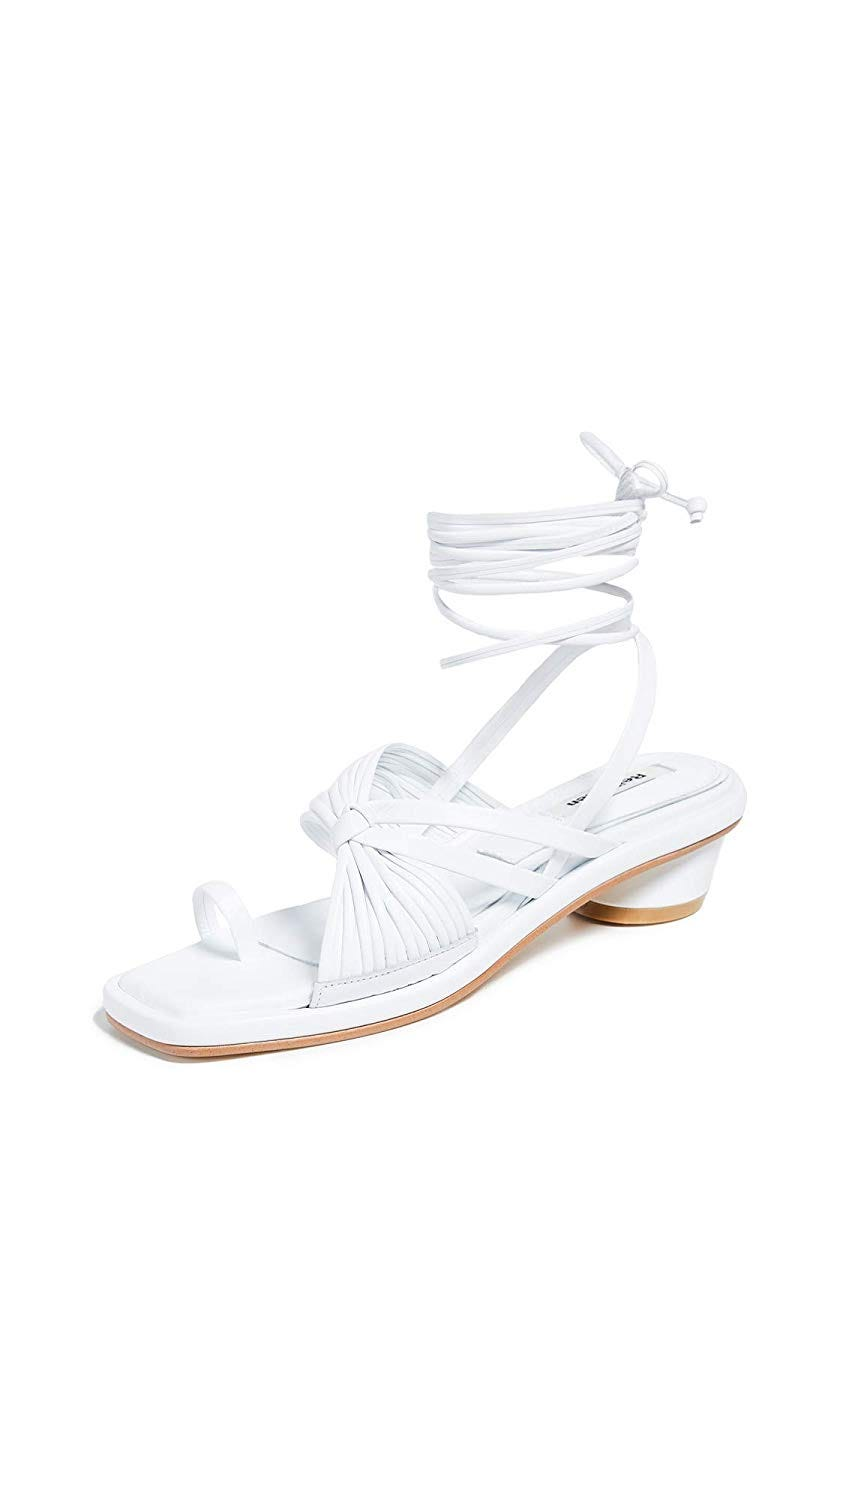 c67706af4931f Cute Womens Shoes & Sandals To Buy On Amazon Prime Day